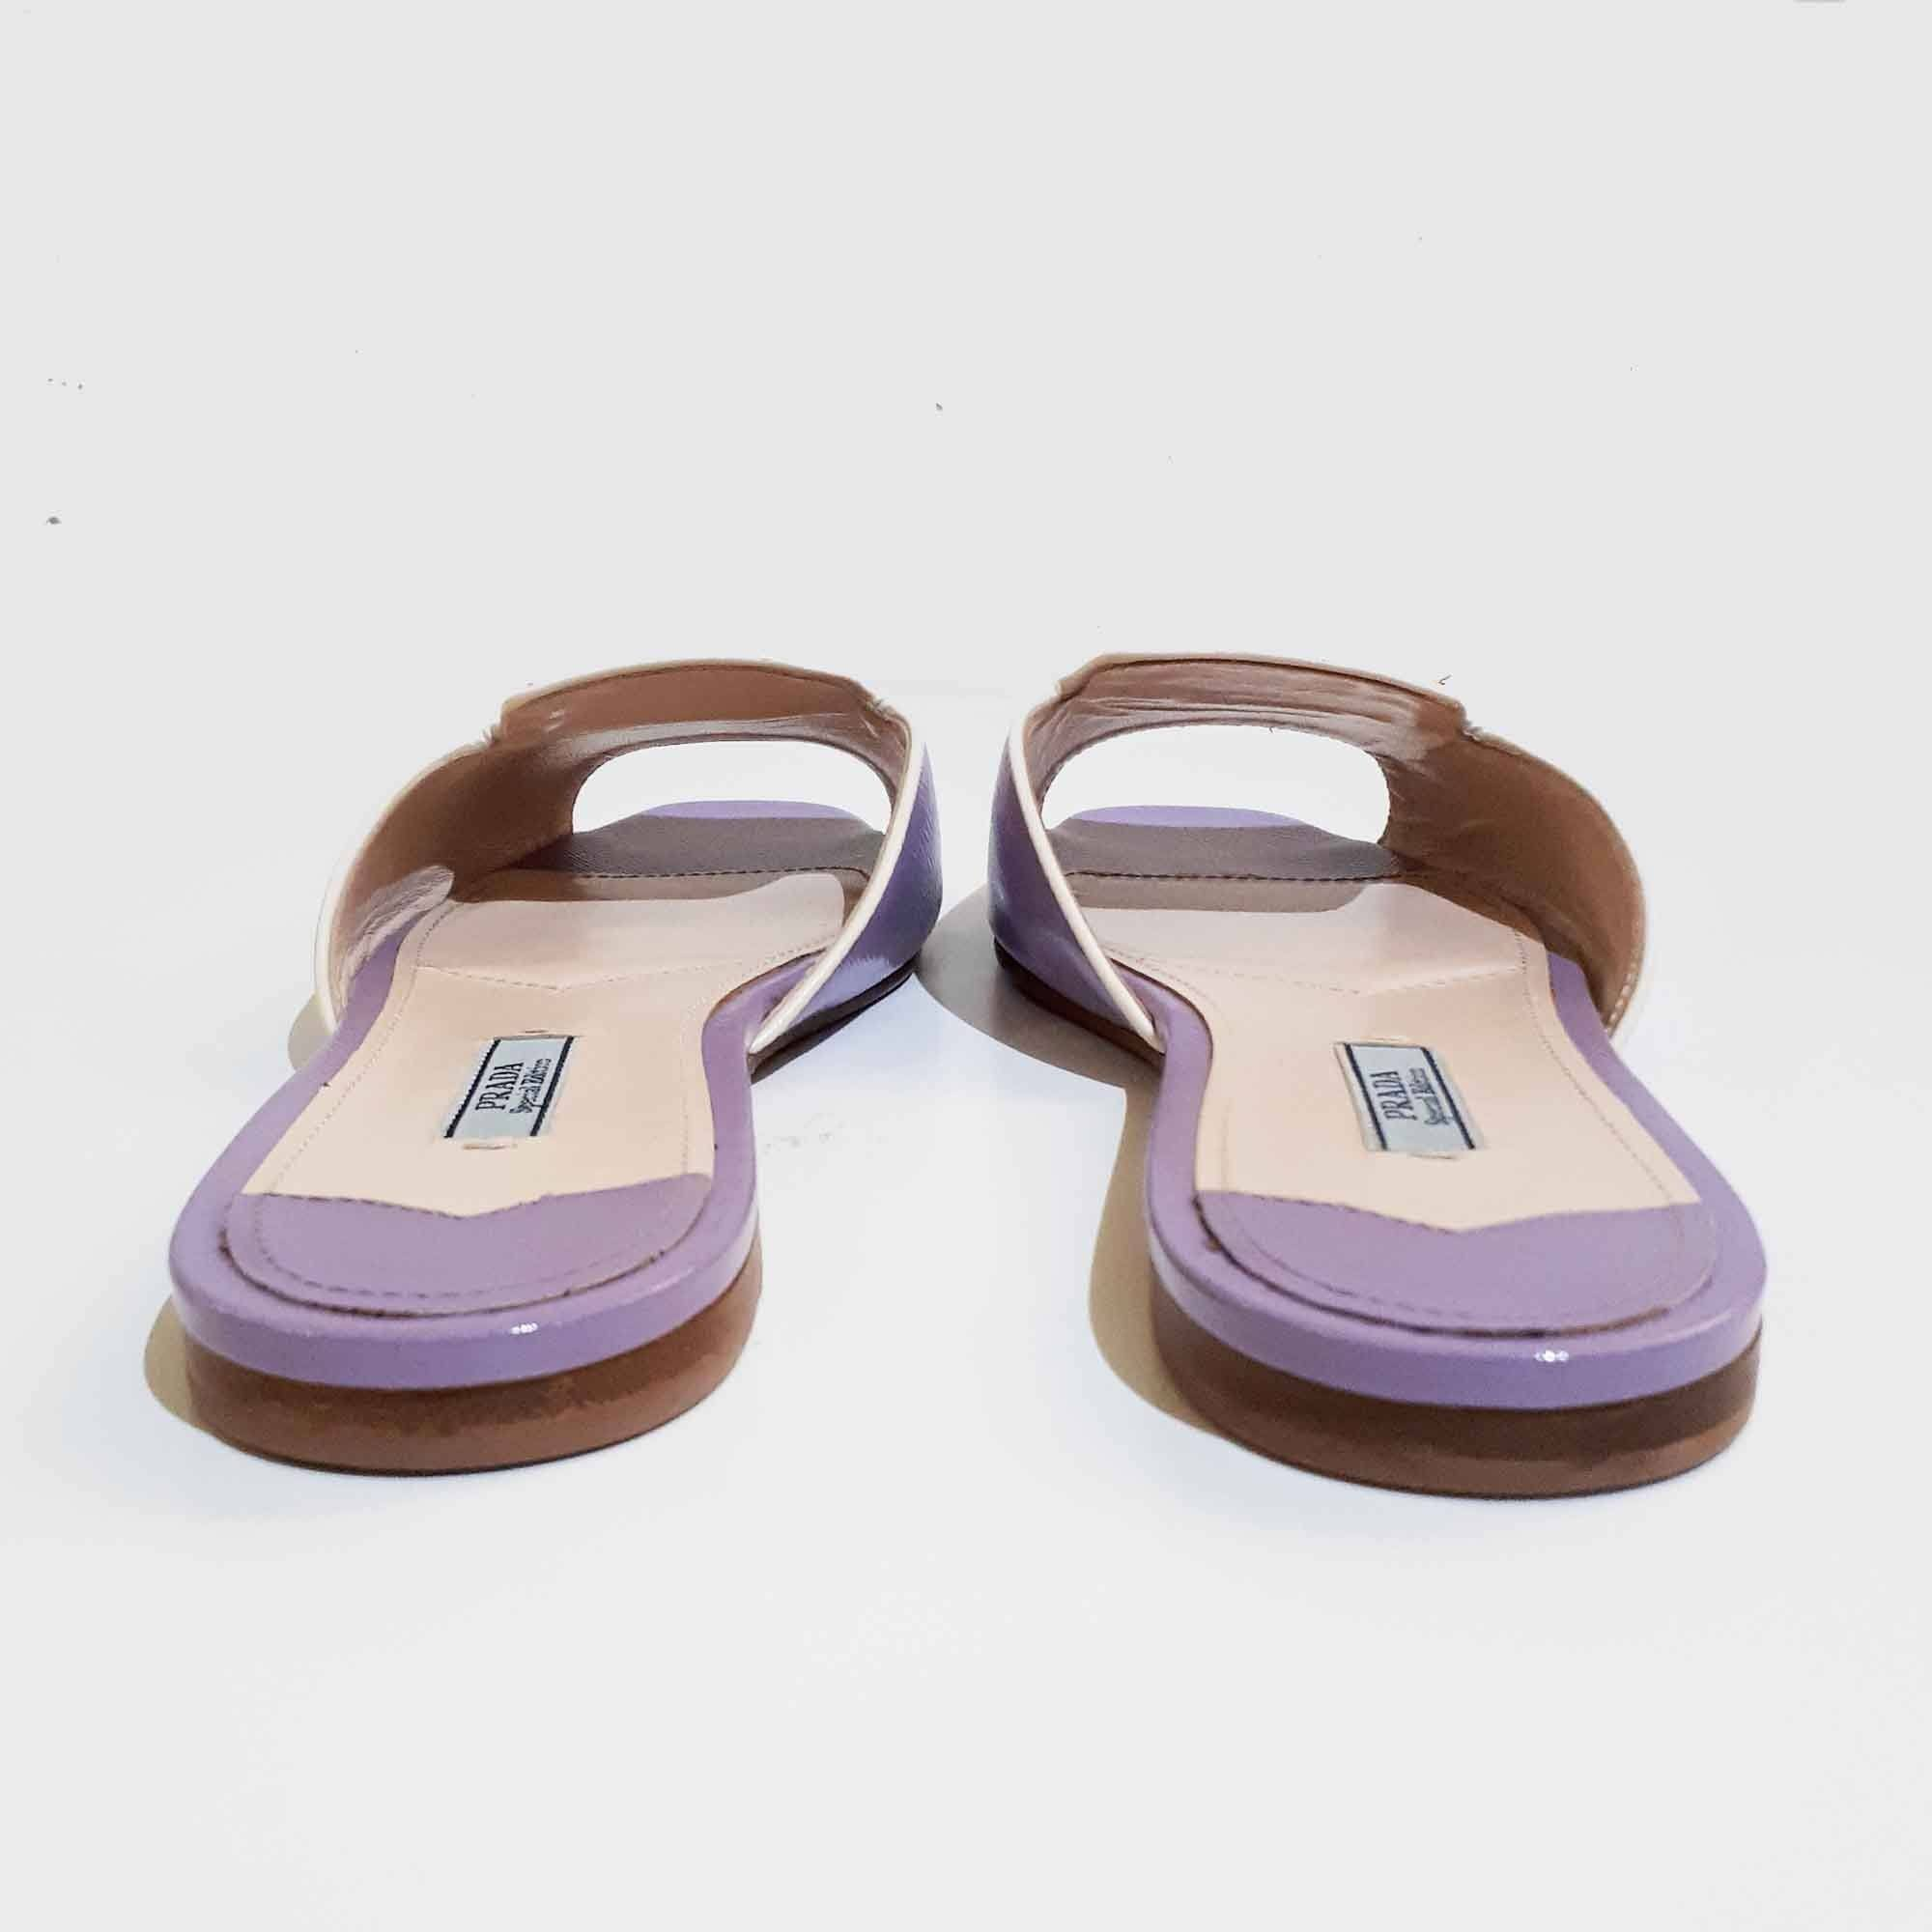 Prada Purple Saffiano Leather Slip-On Sandal